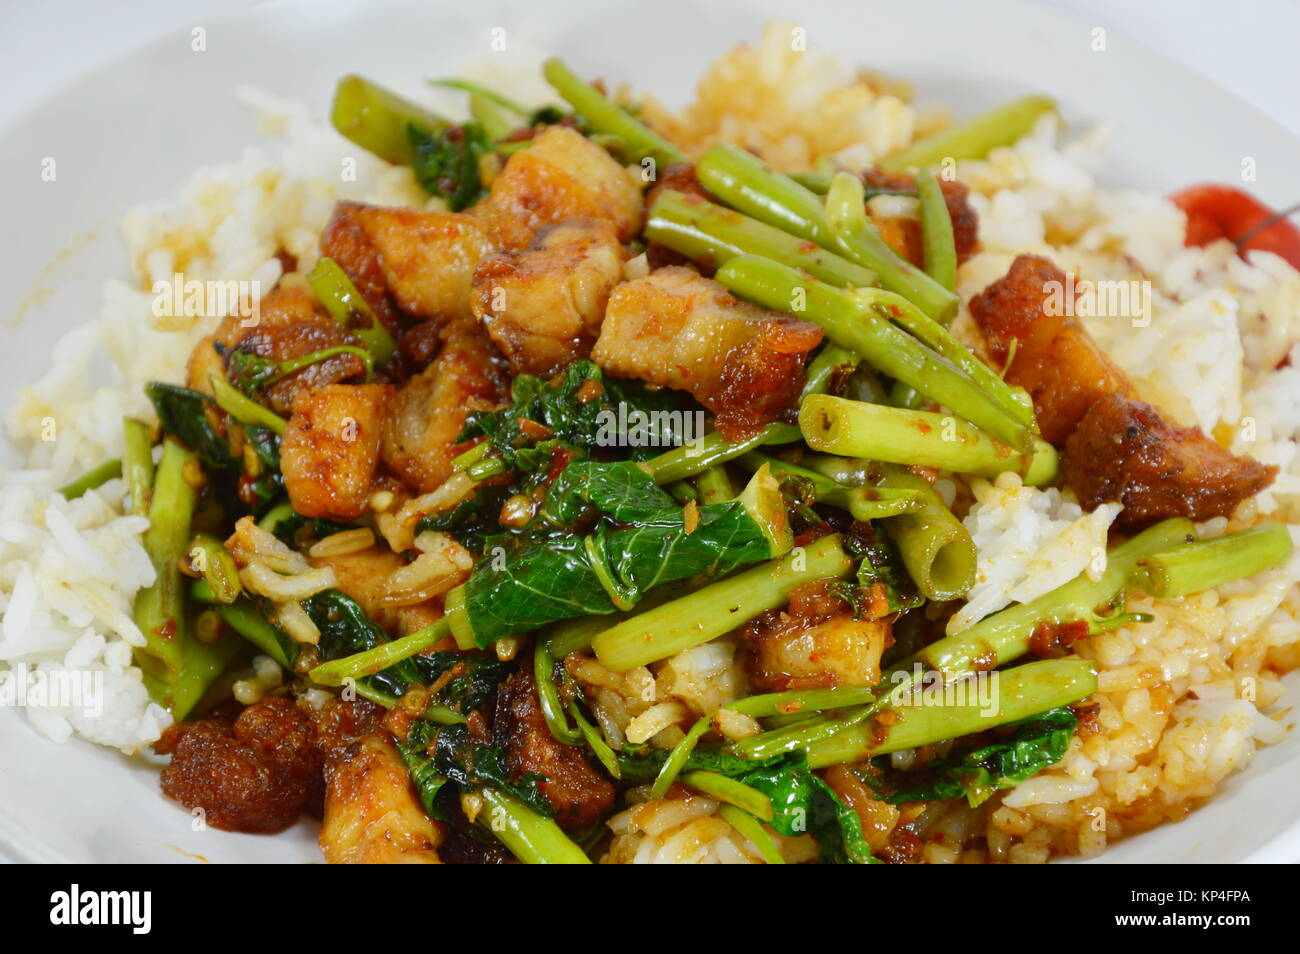 stir fried morning glory with crispy pork curry topping on